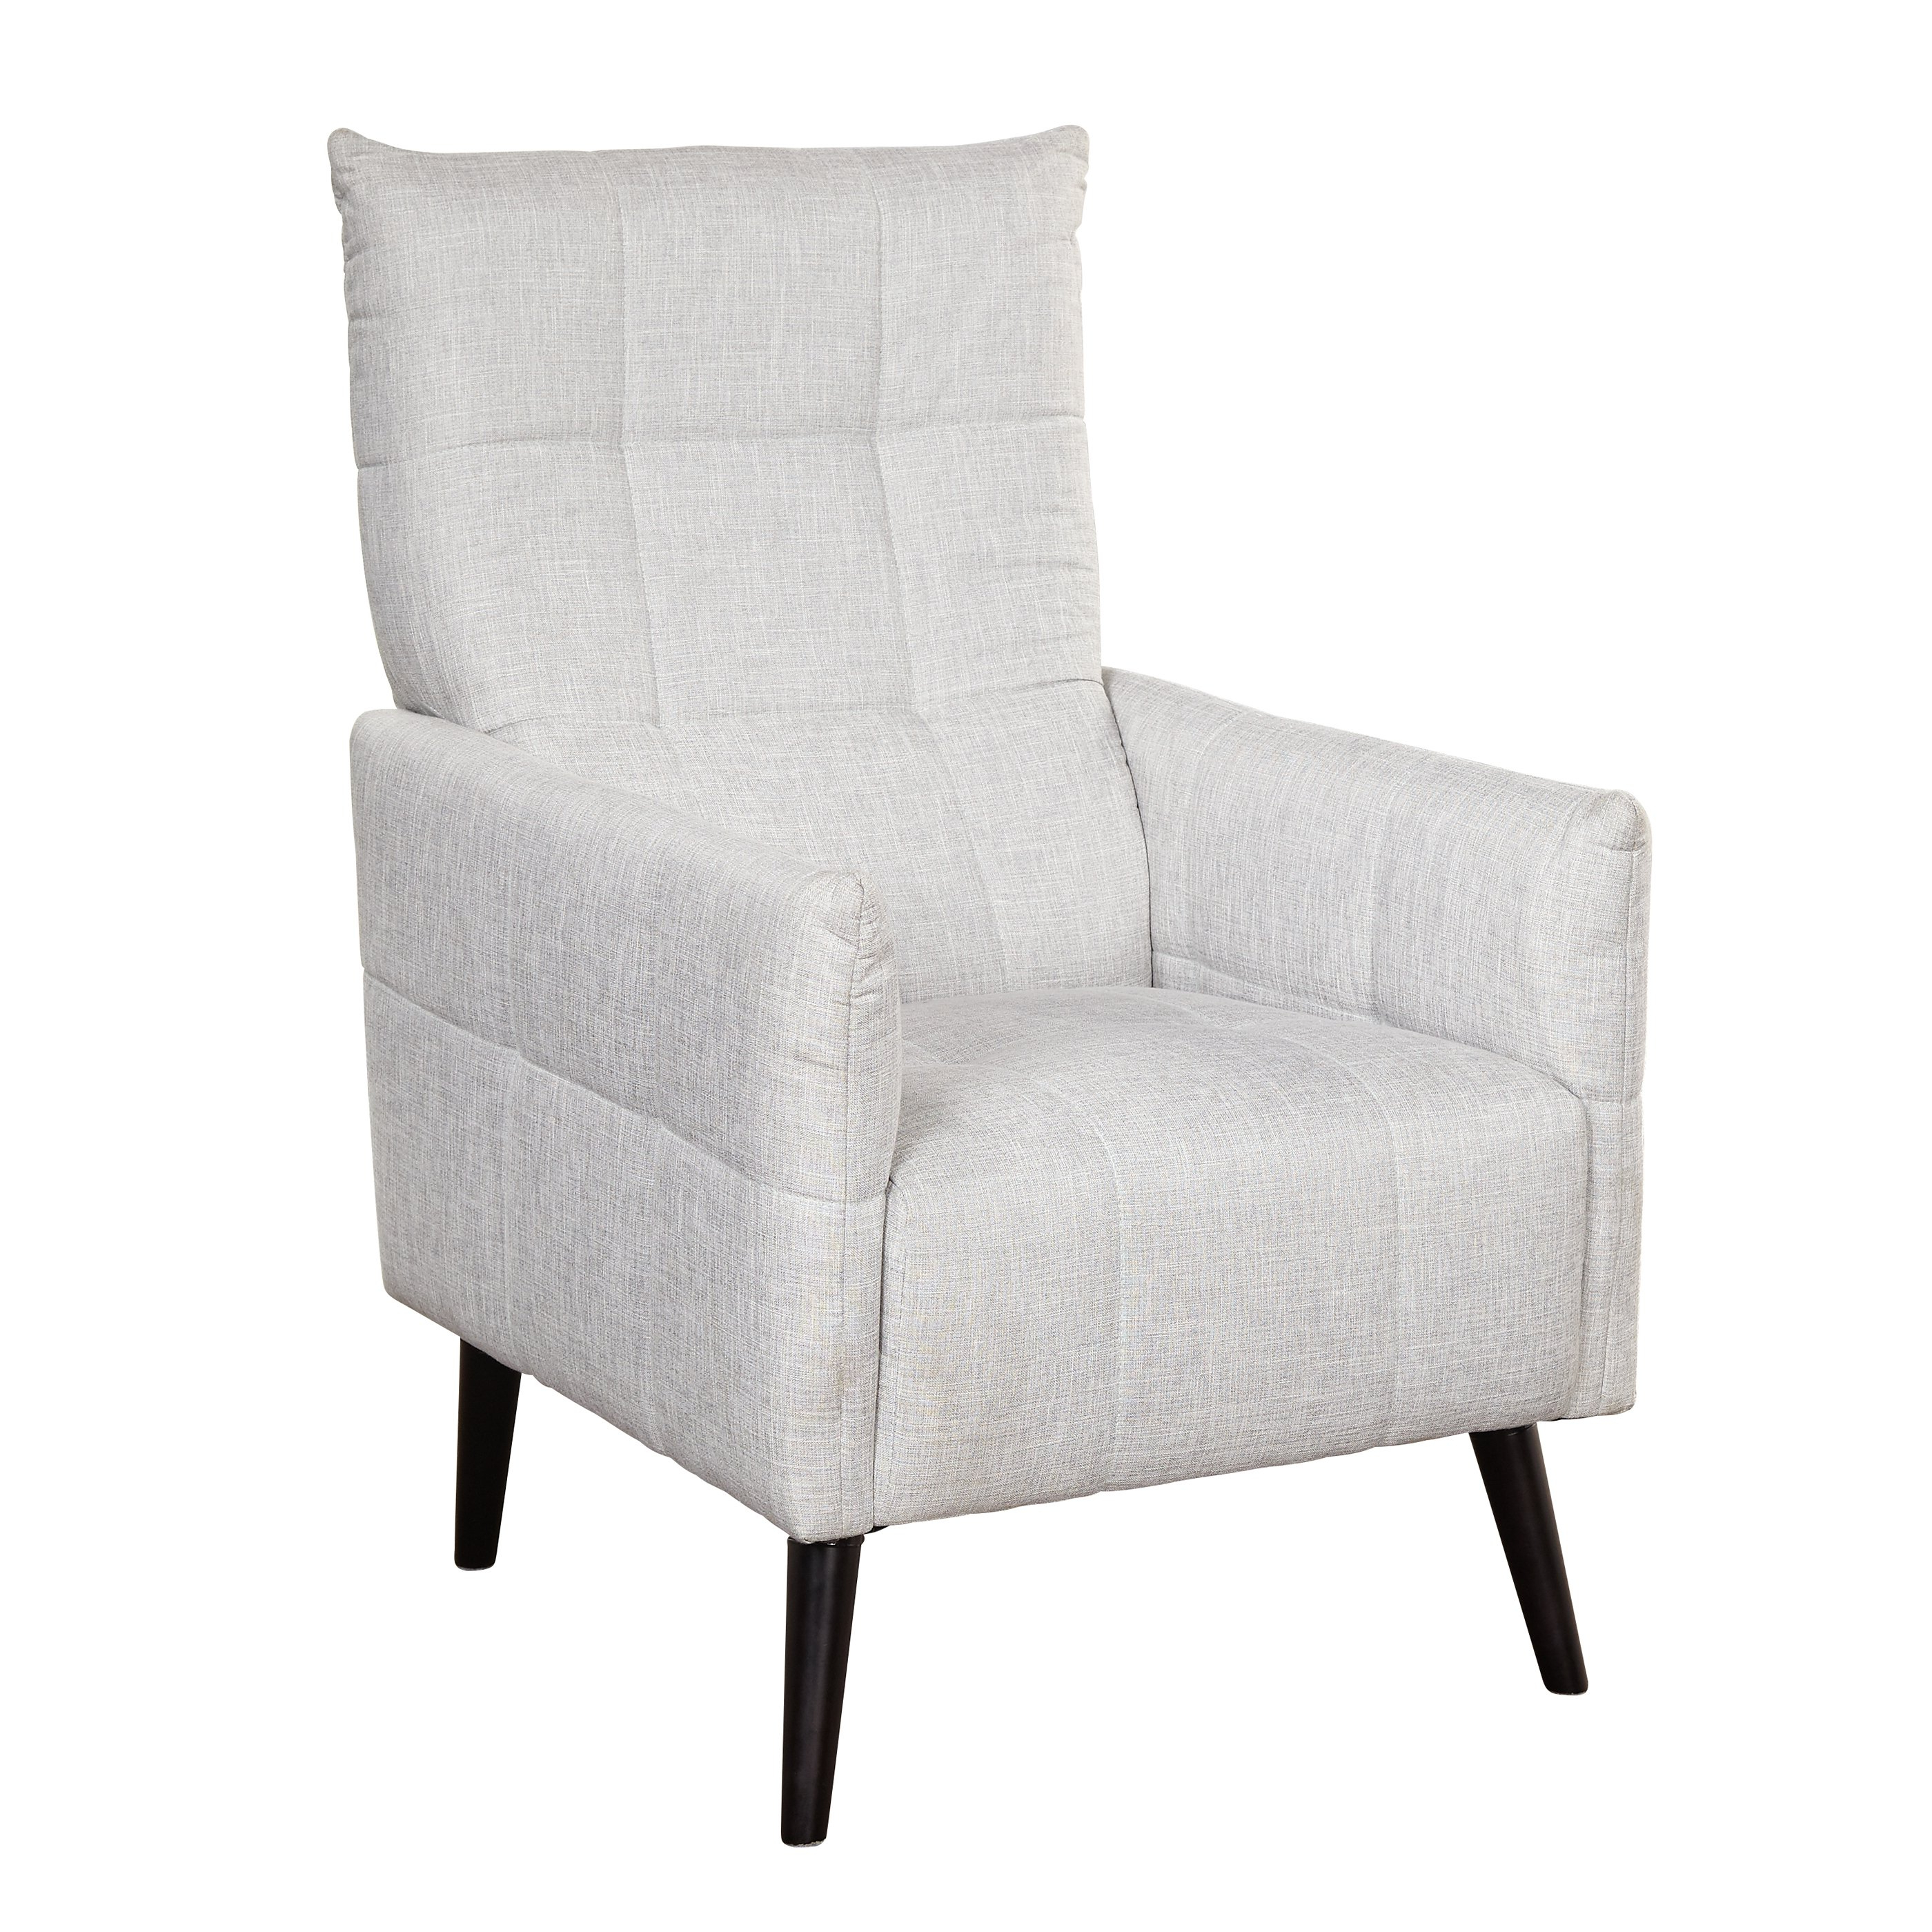 Fashionable Shop Simple Living Gwen Mid Century Accent Chair – Free Shipping Intended For Gwen Sofa Chairs (View 6 of 20)